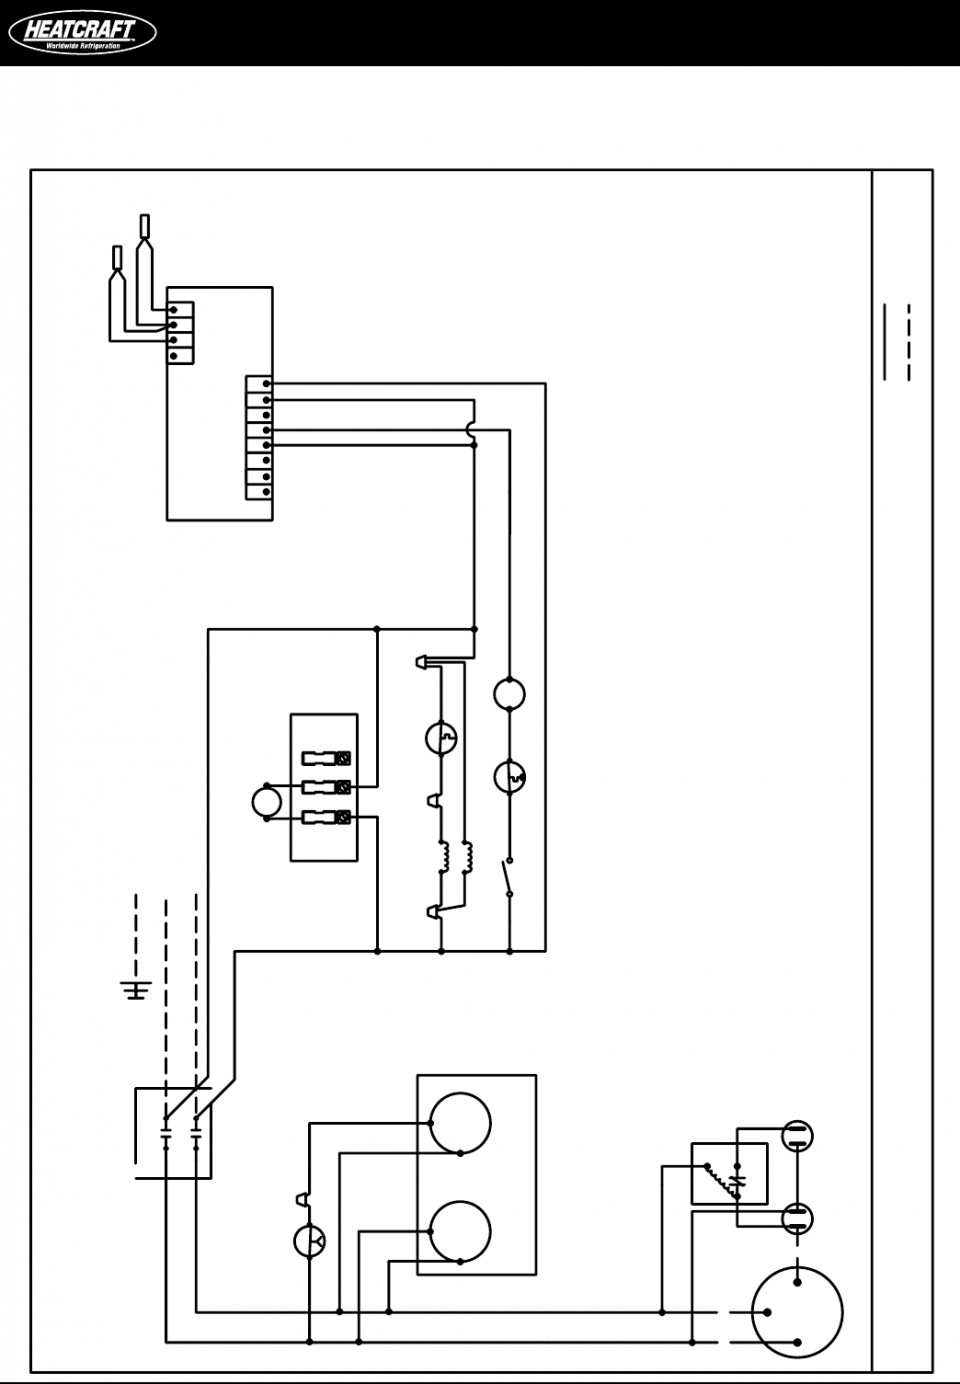 walk in freezer wiring schematics